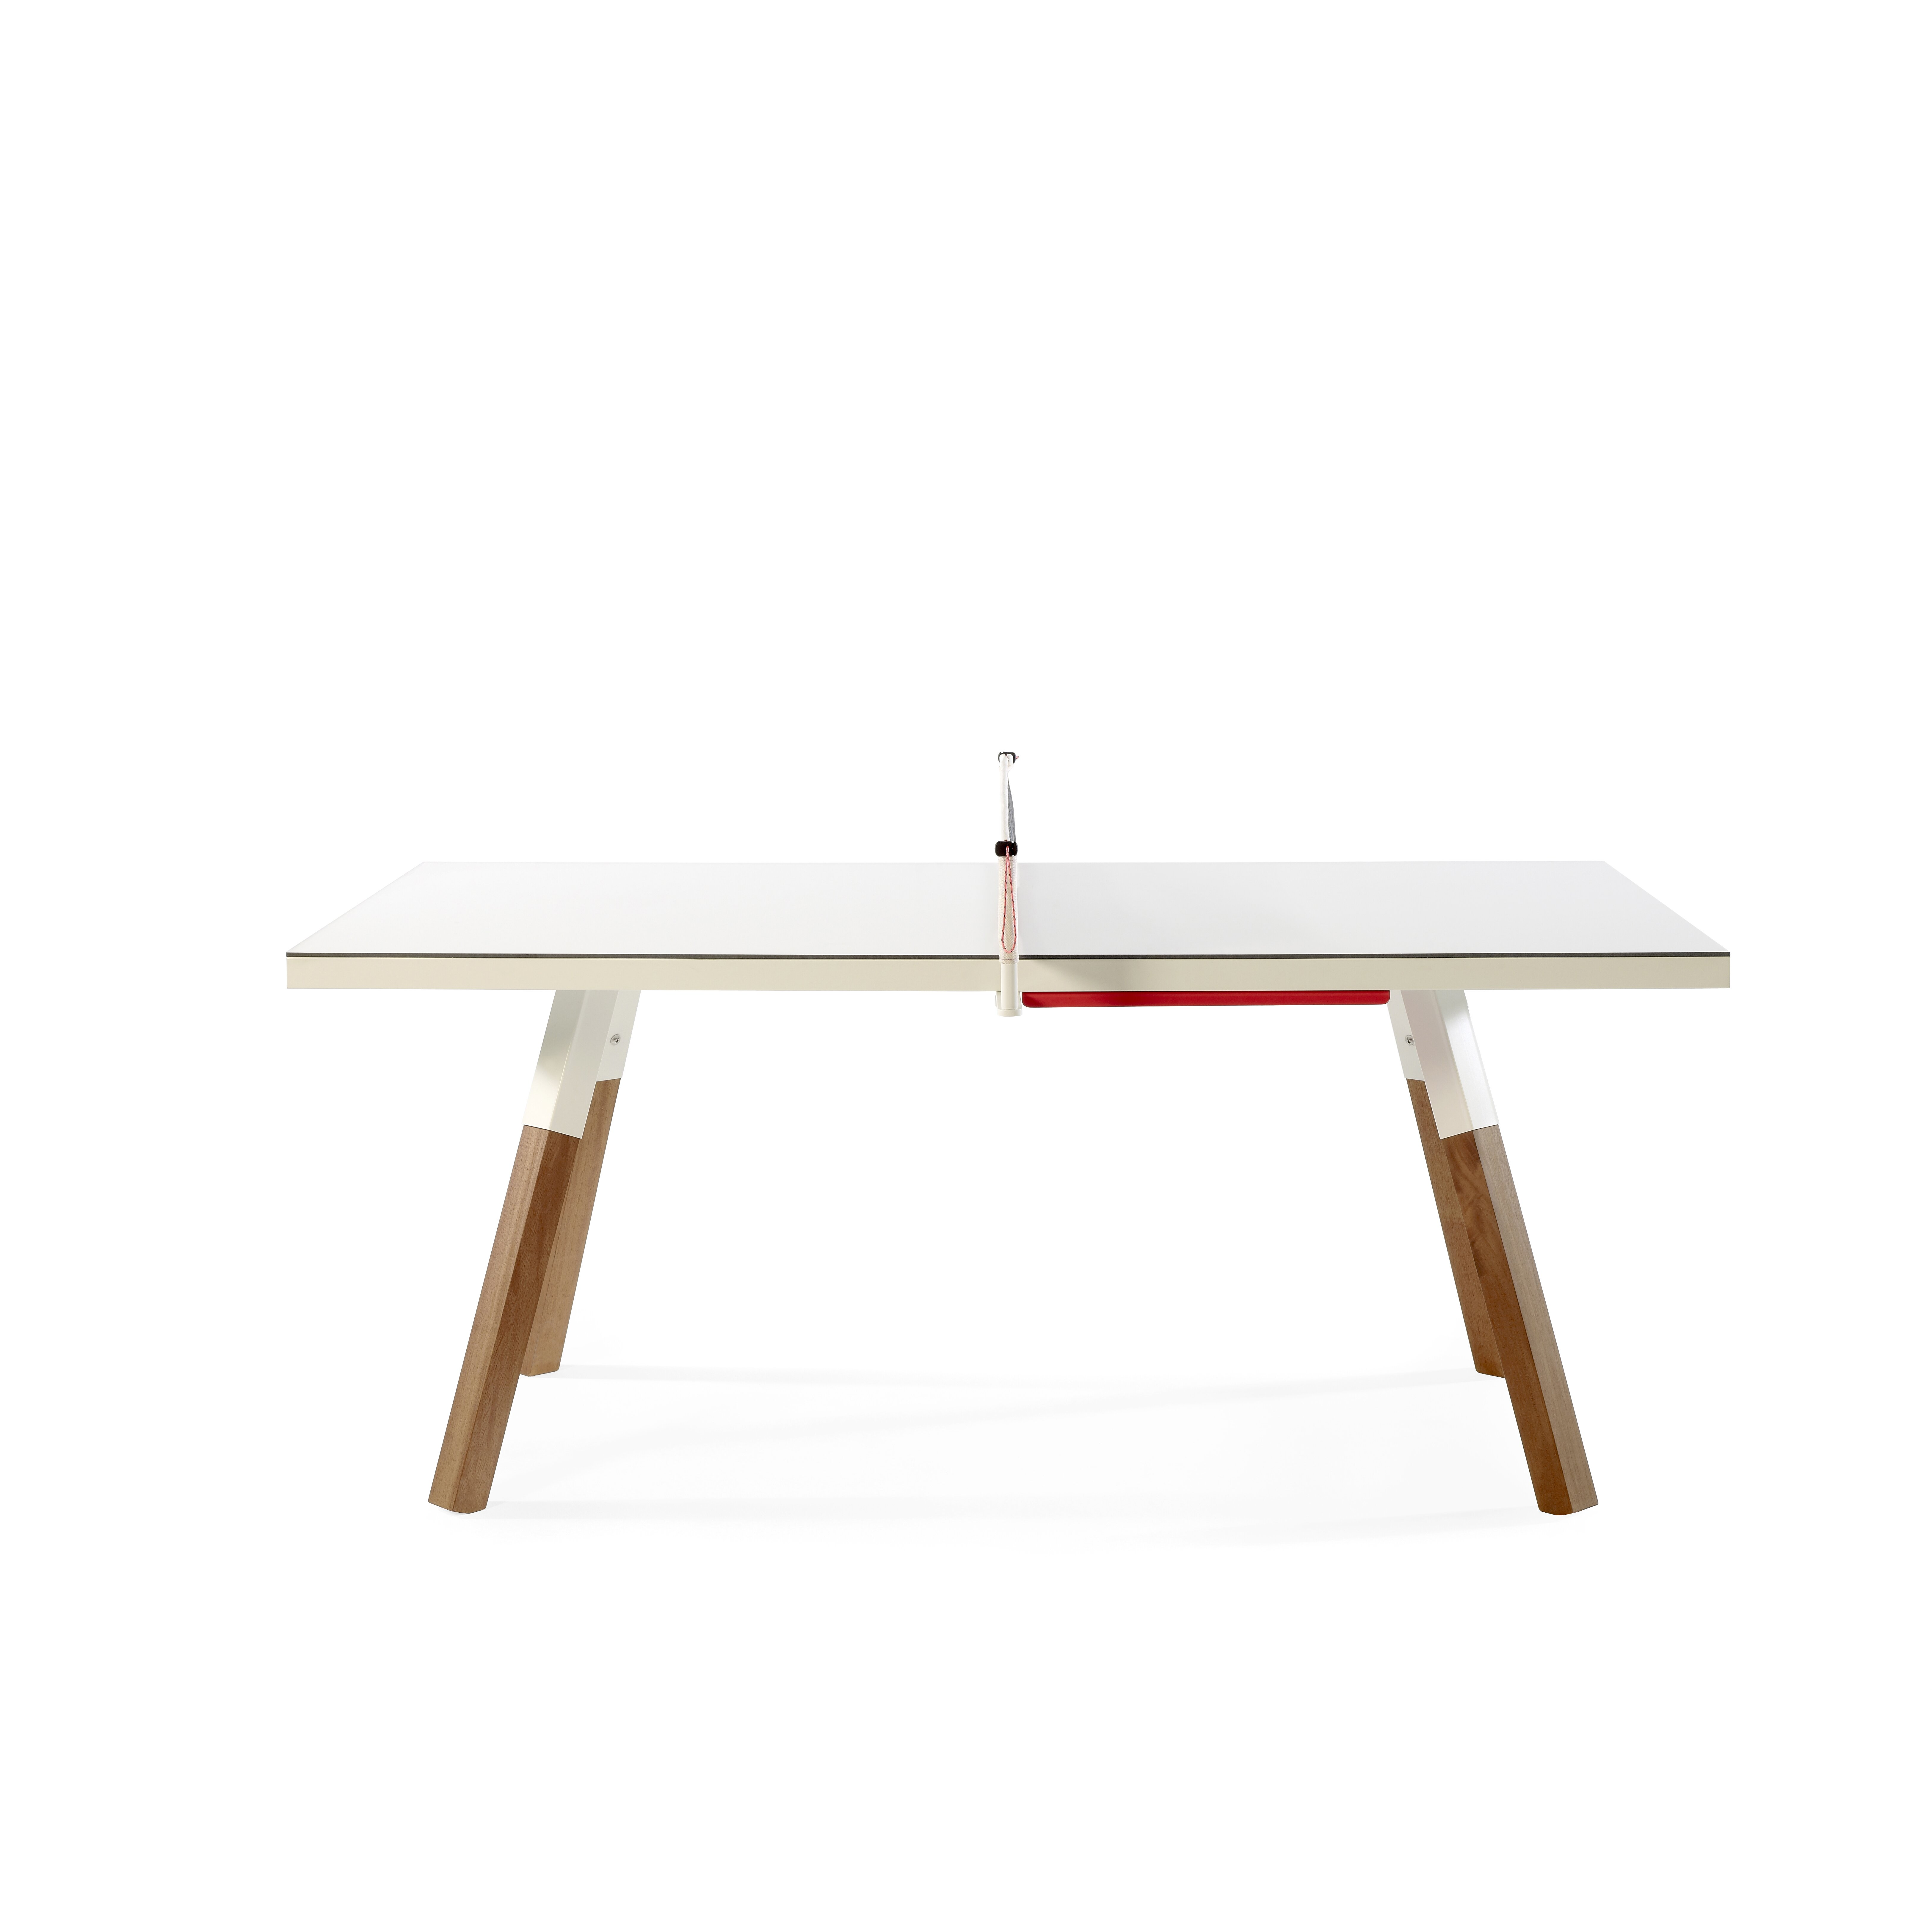 Rs barcelona you and me ping pong table reviews wayfair for Runescape exp table 1 99